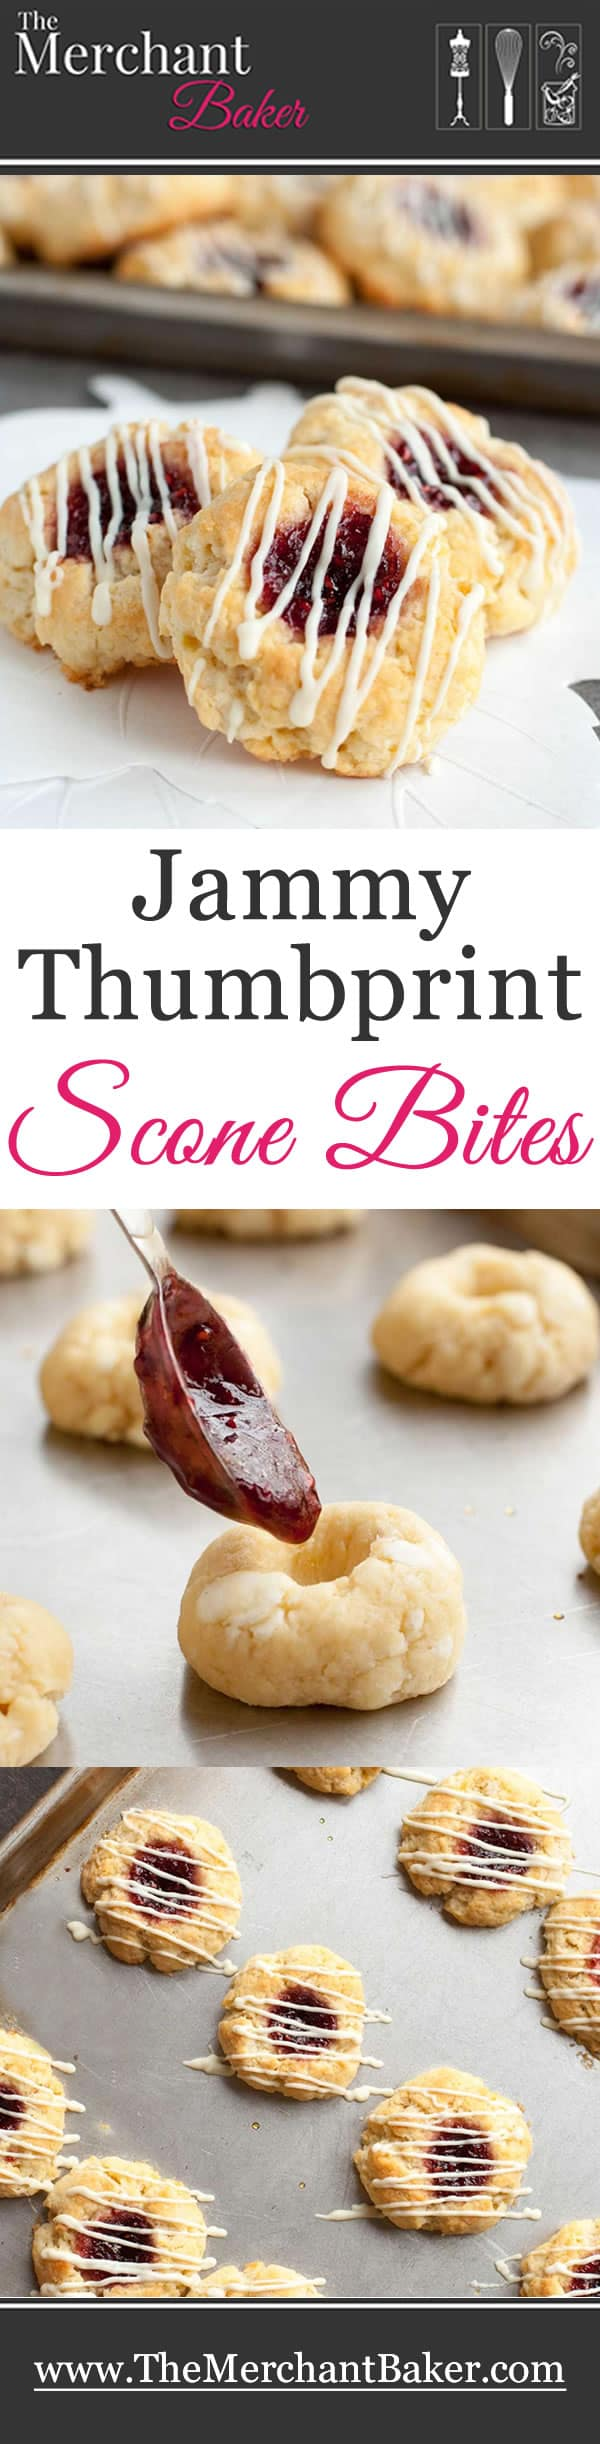 Jammy Thumbprint Scone Bites